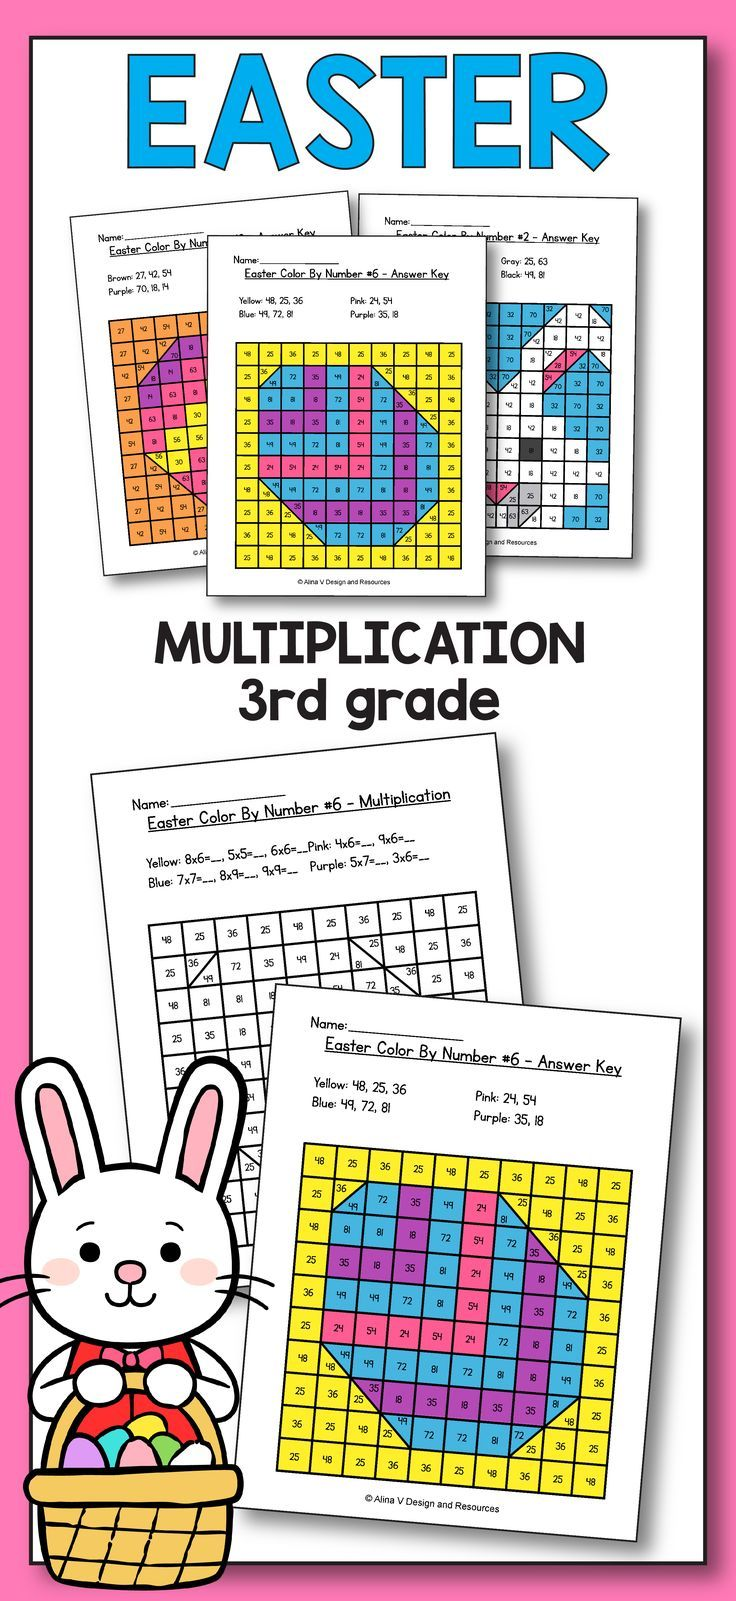 Easter Activities For 3rd Grade Easter Multiplication Worksheets